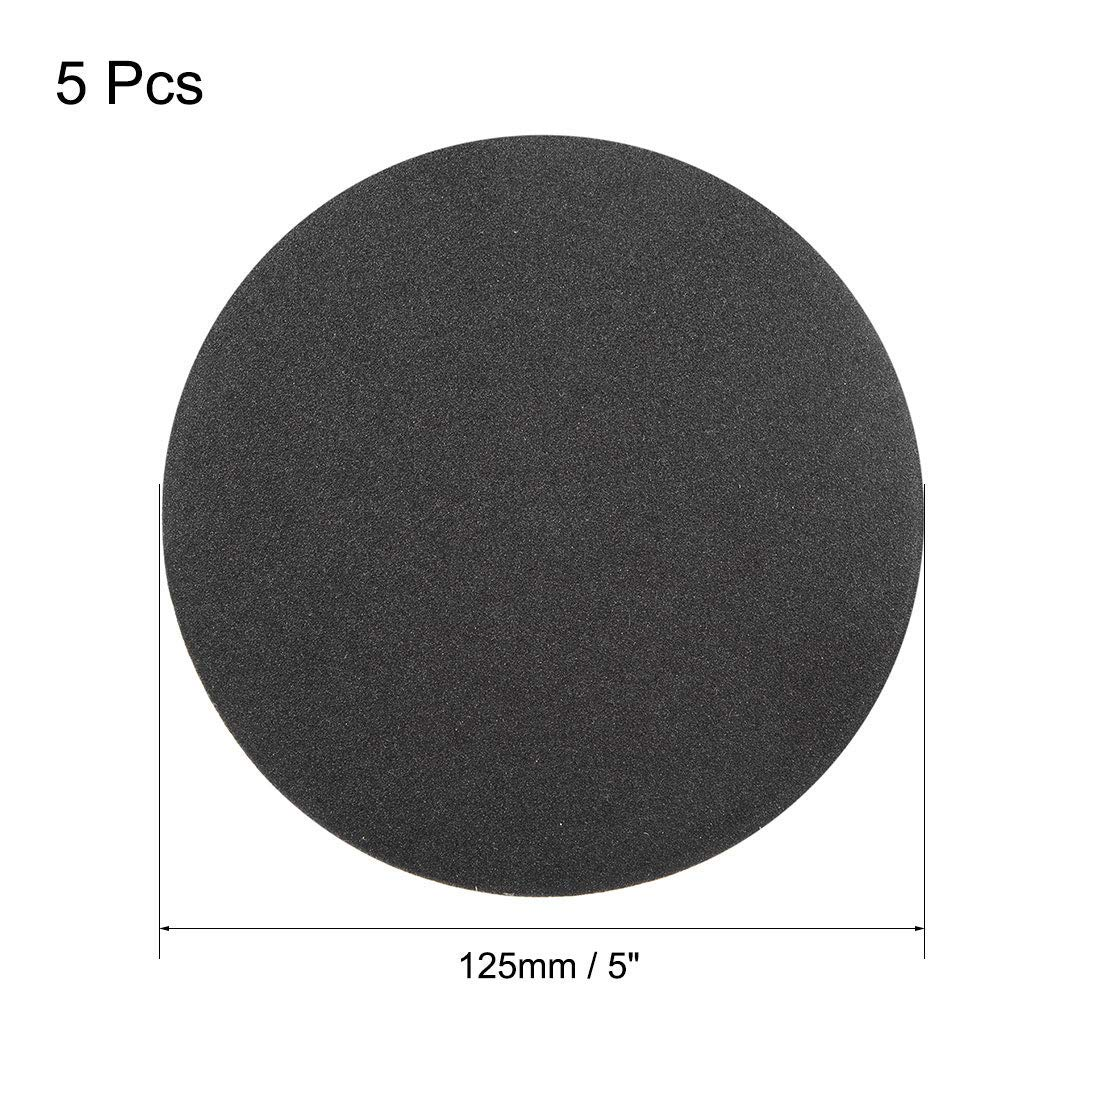 5-inch wet and dry sanding discs 180-hook and loop sanding disc 5-piece silicon carbide sandpaper